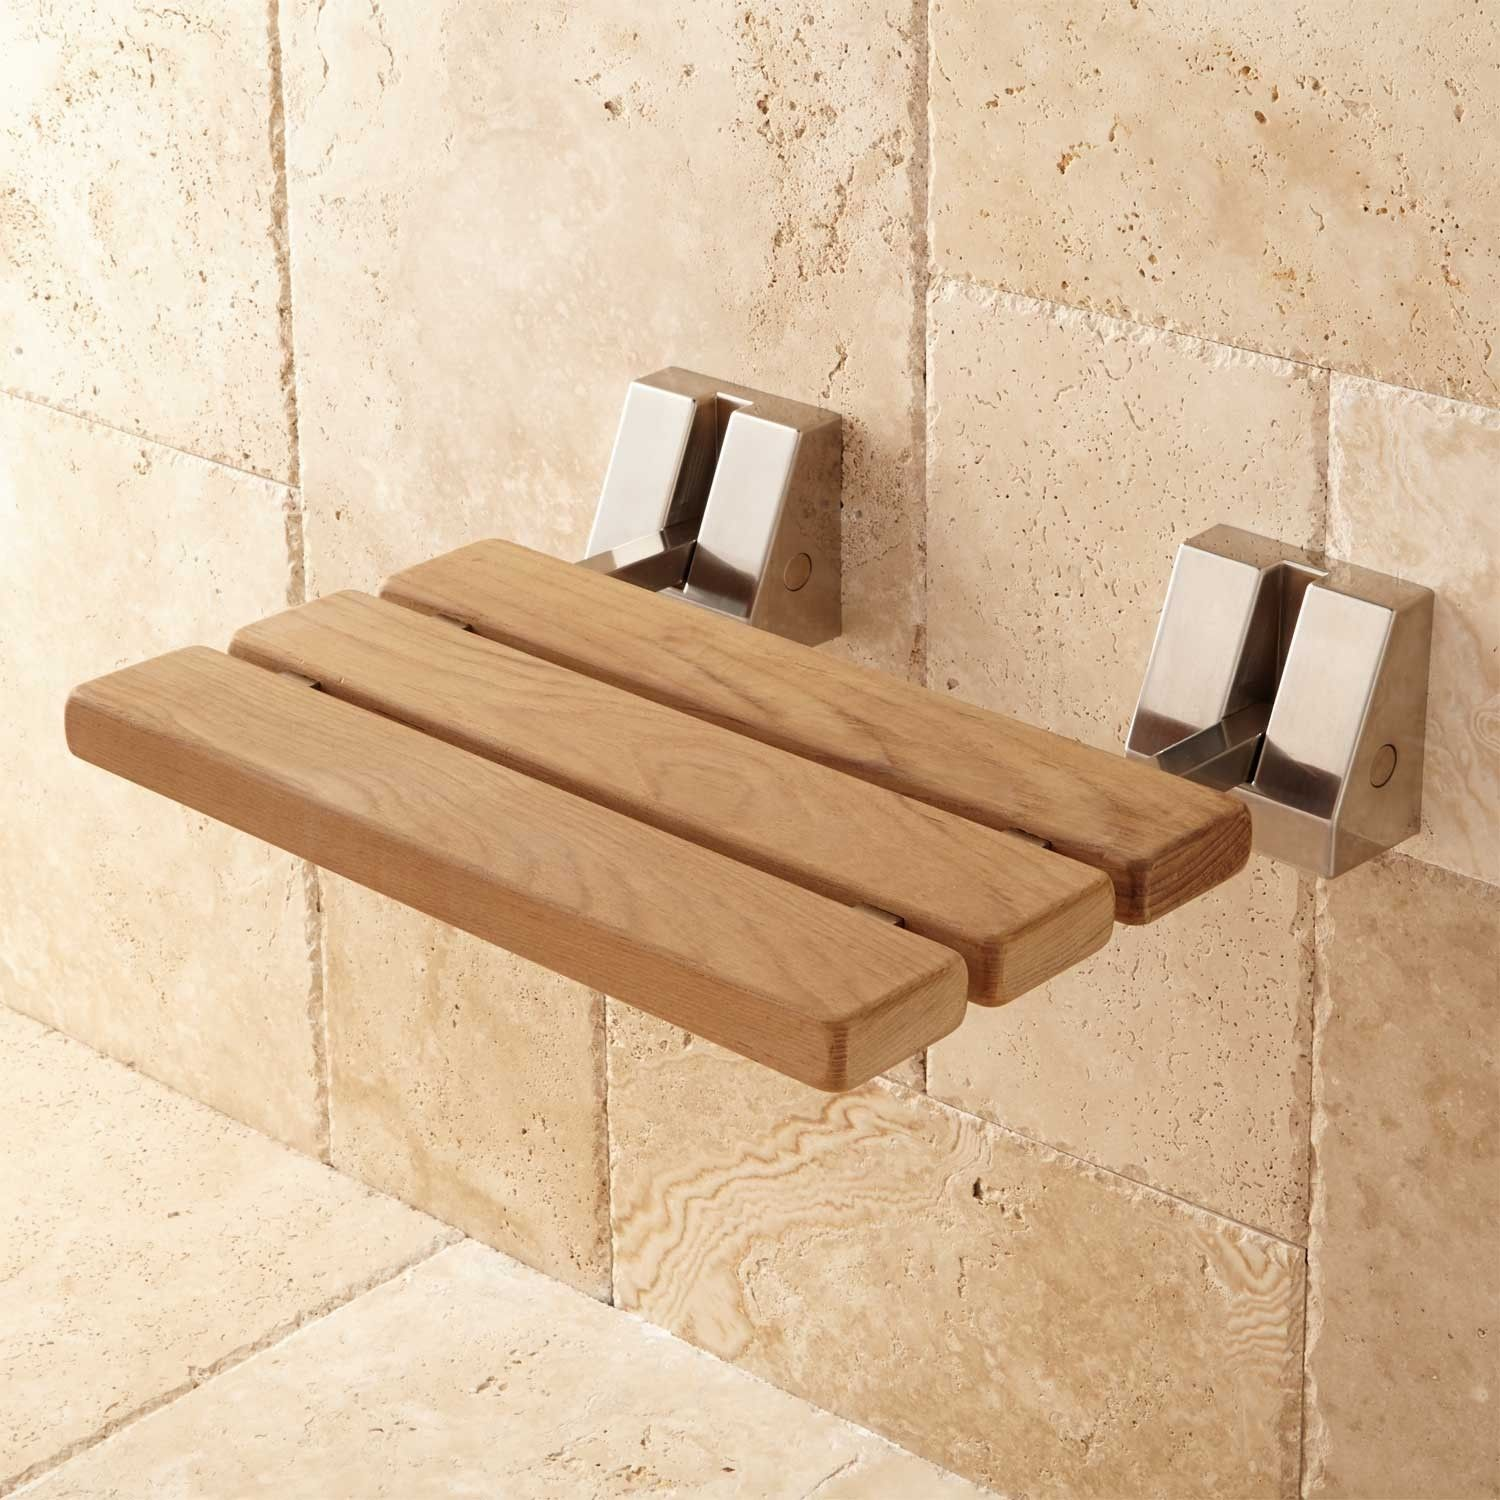 Magnificent Wall Mounted Teak Shower Seat Folding Projects Shower Bralicious Painted Fabric Chair Ideas Braliciousco